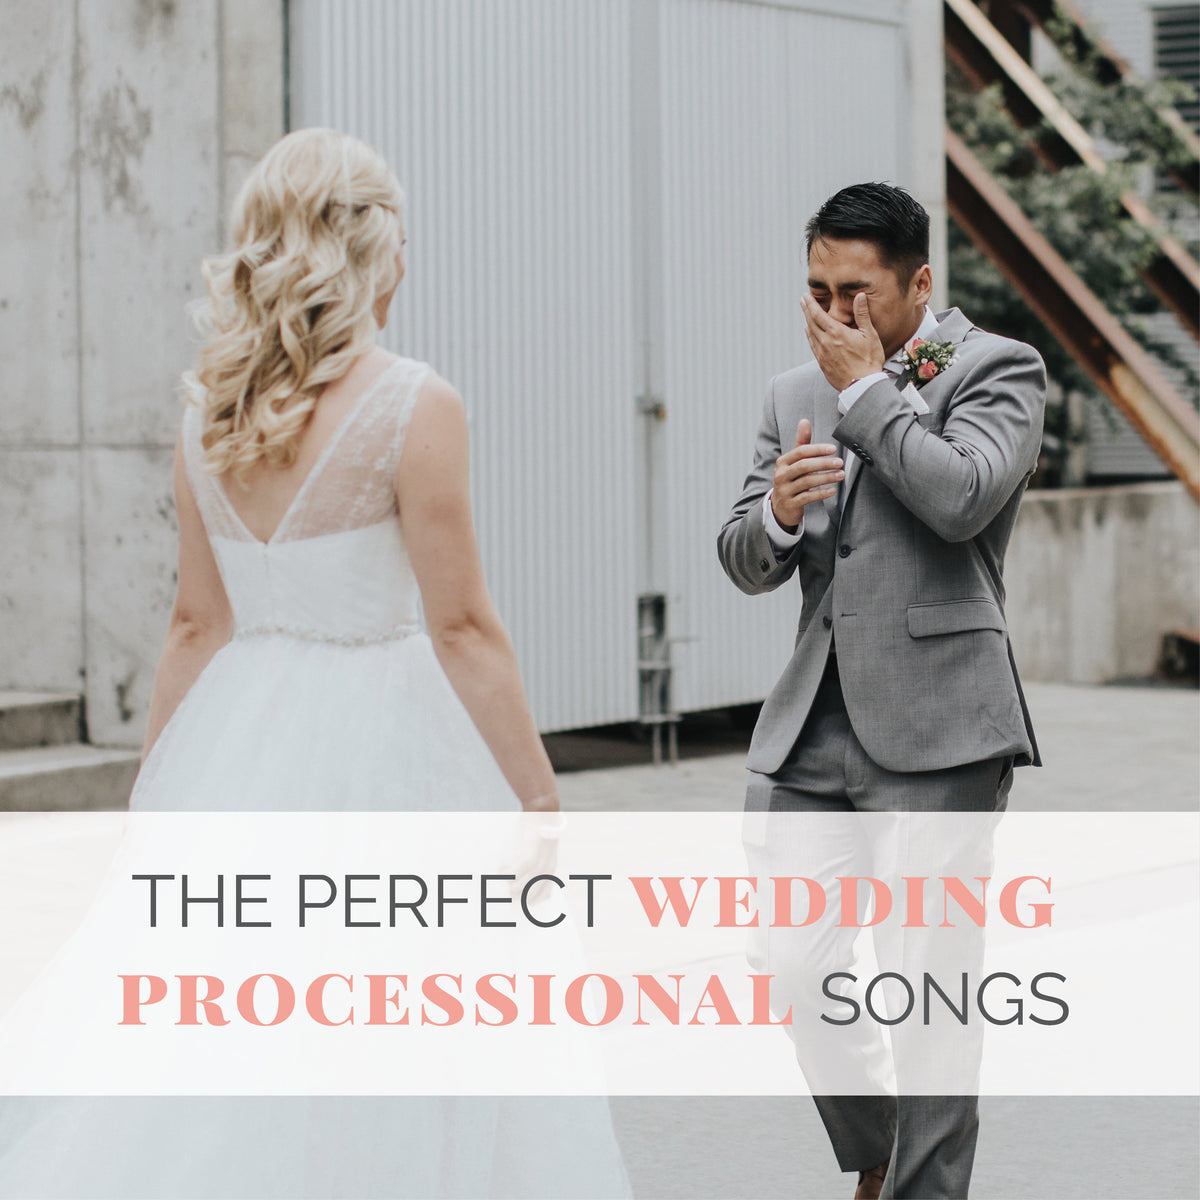 Walk Down The Aisle To The Perfect Wedding Processional